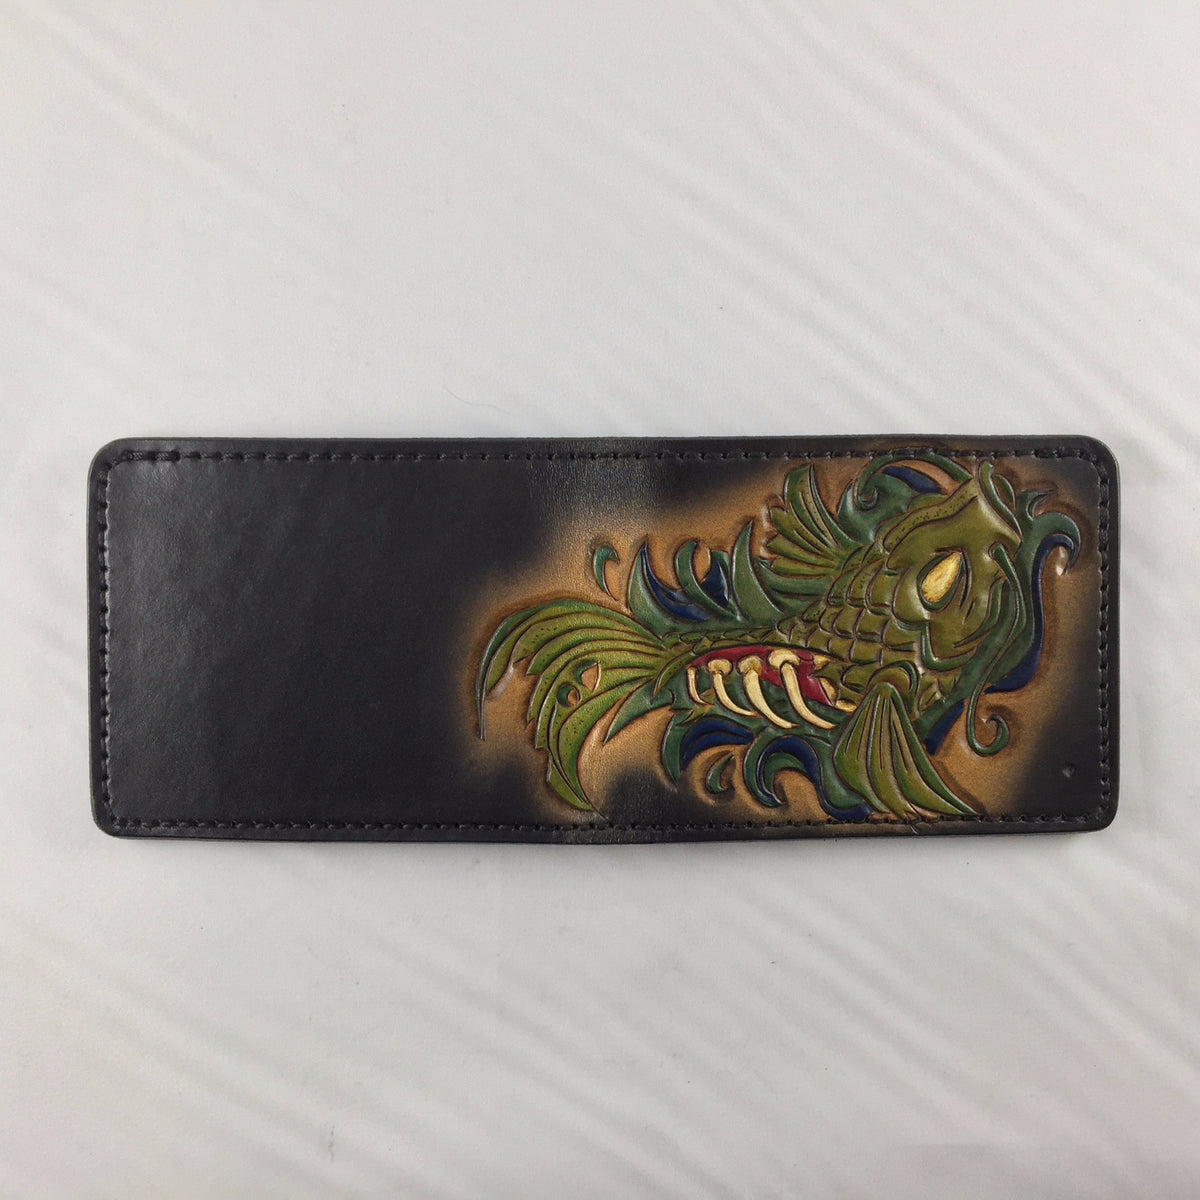 Zombie Koi Fish - Hand Tooled Leather Bifold Wallet - Nerd Culture Leather